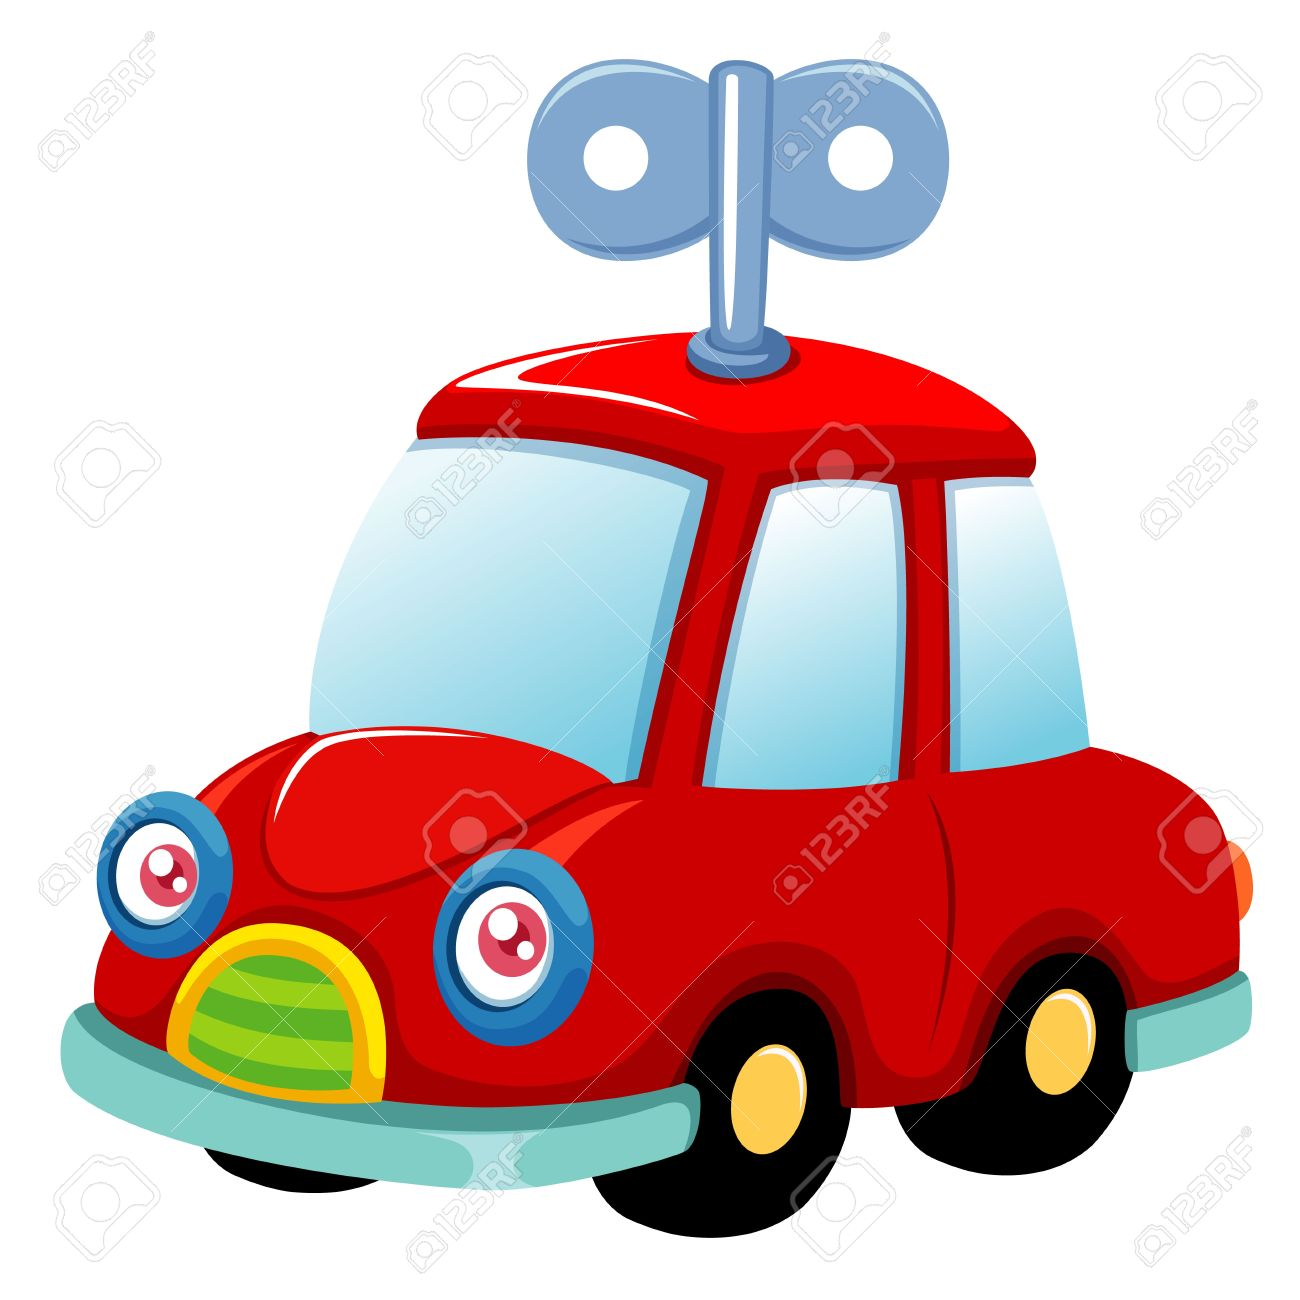 Car toy clipart 5 » Clipart Station.